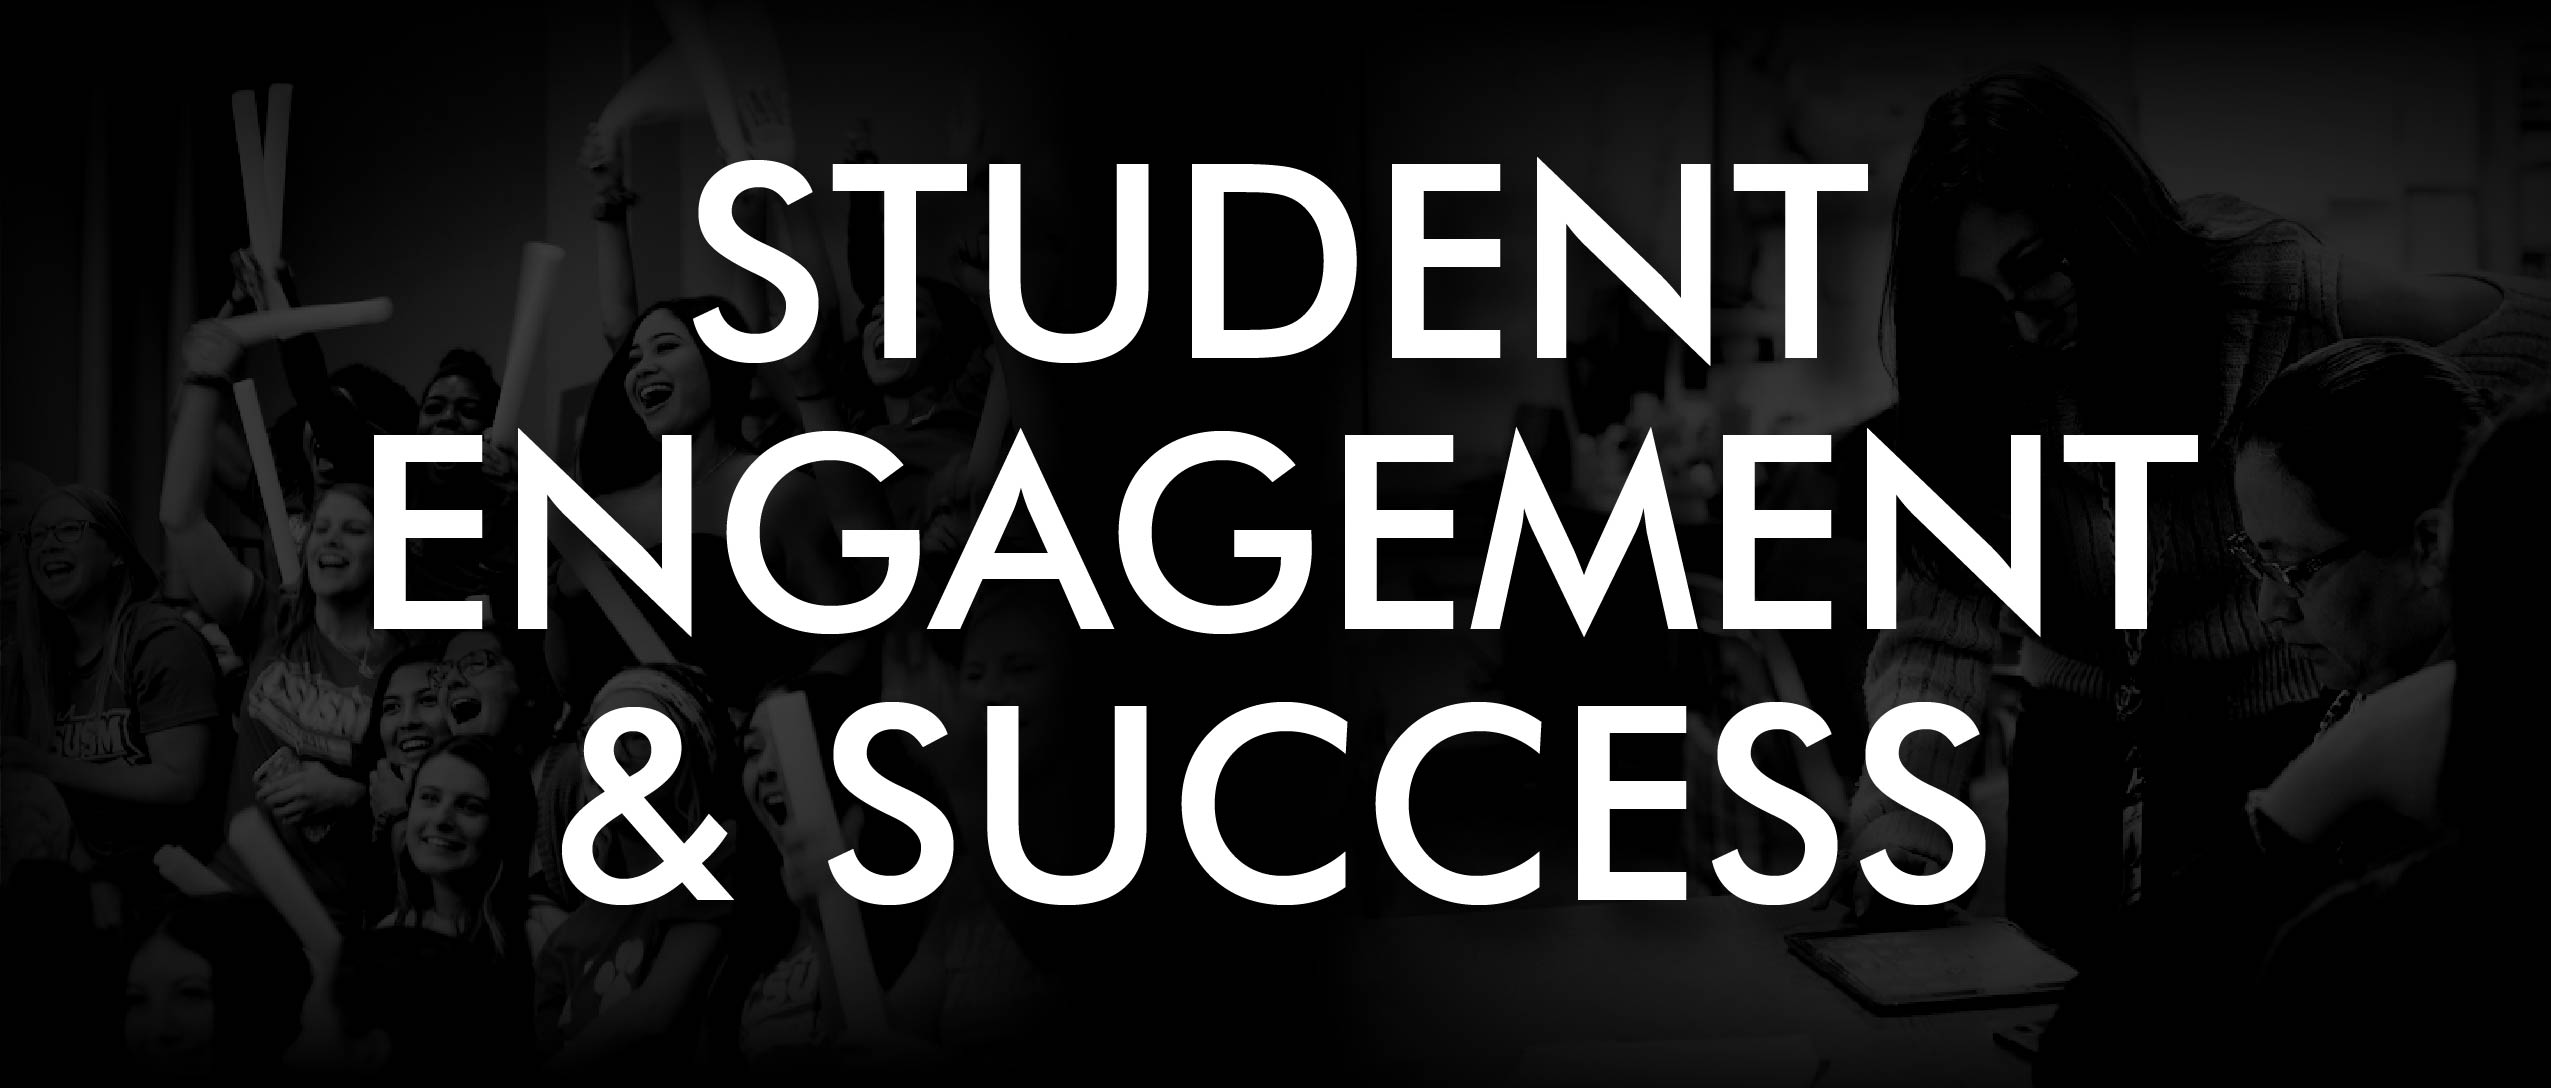 STUDENT ENGAGEMENT & SUCCESS